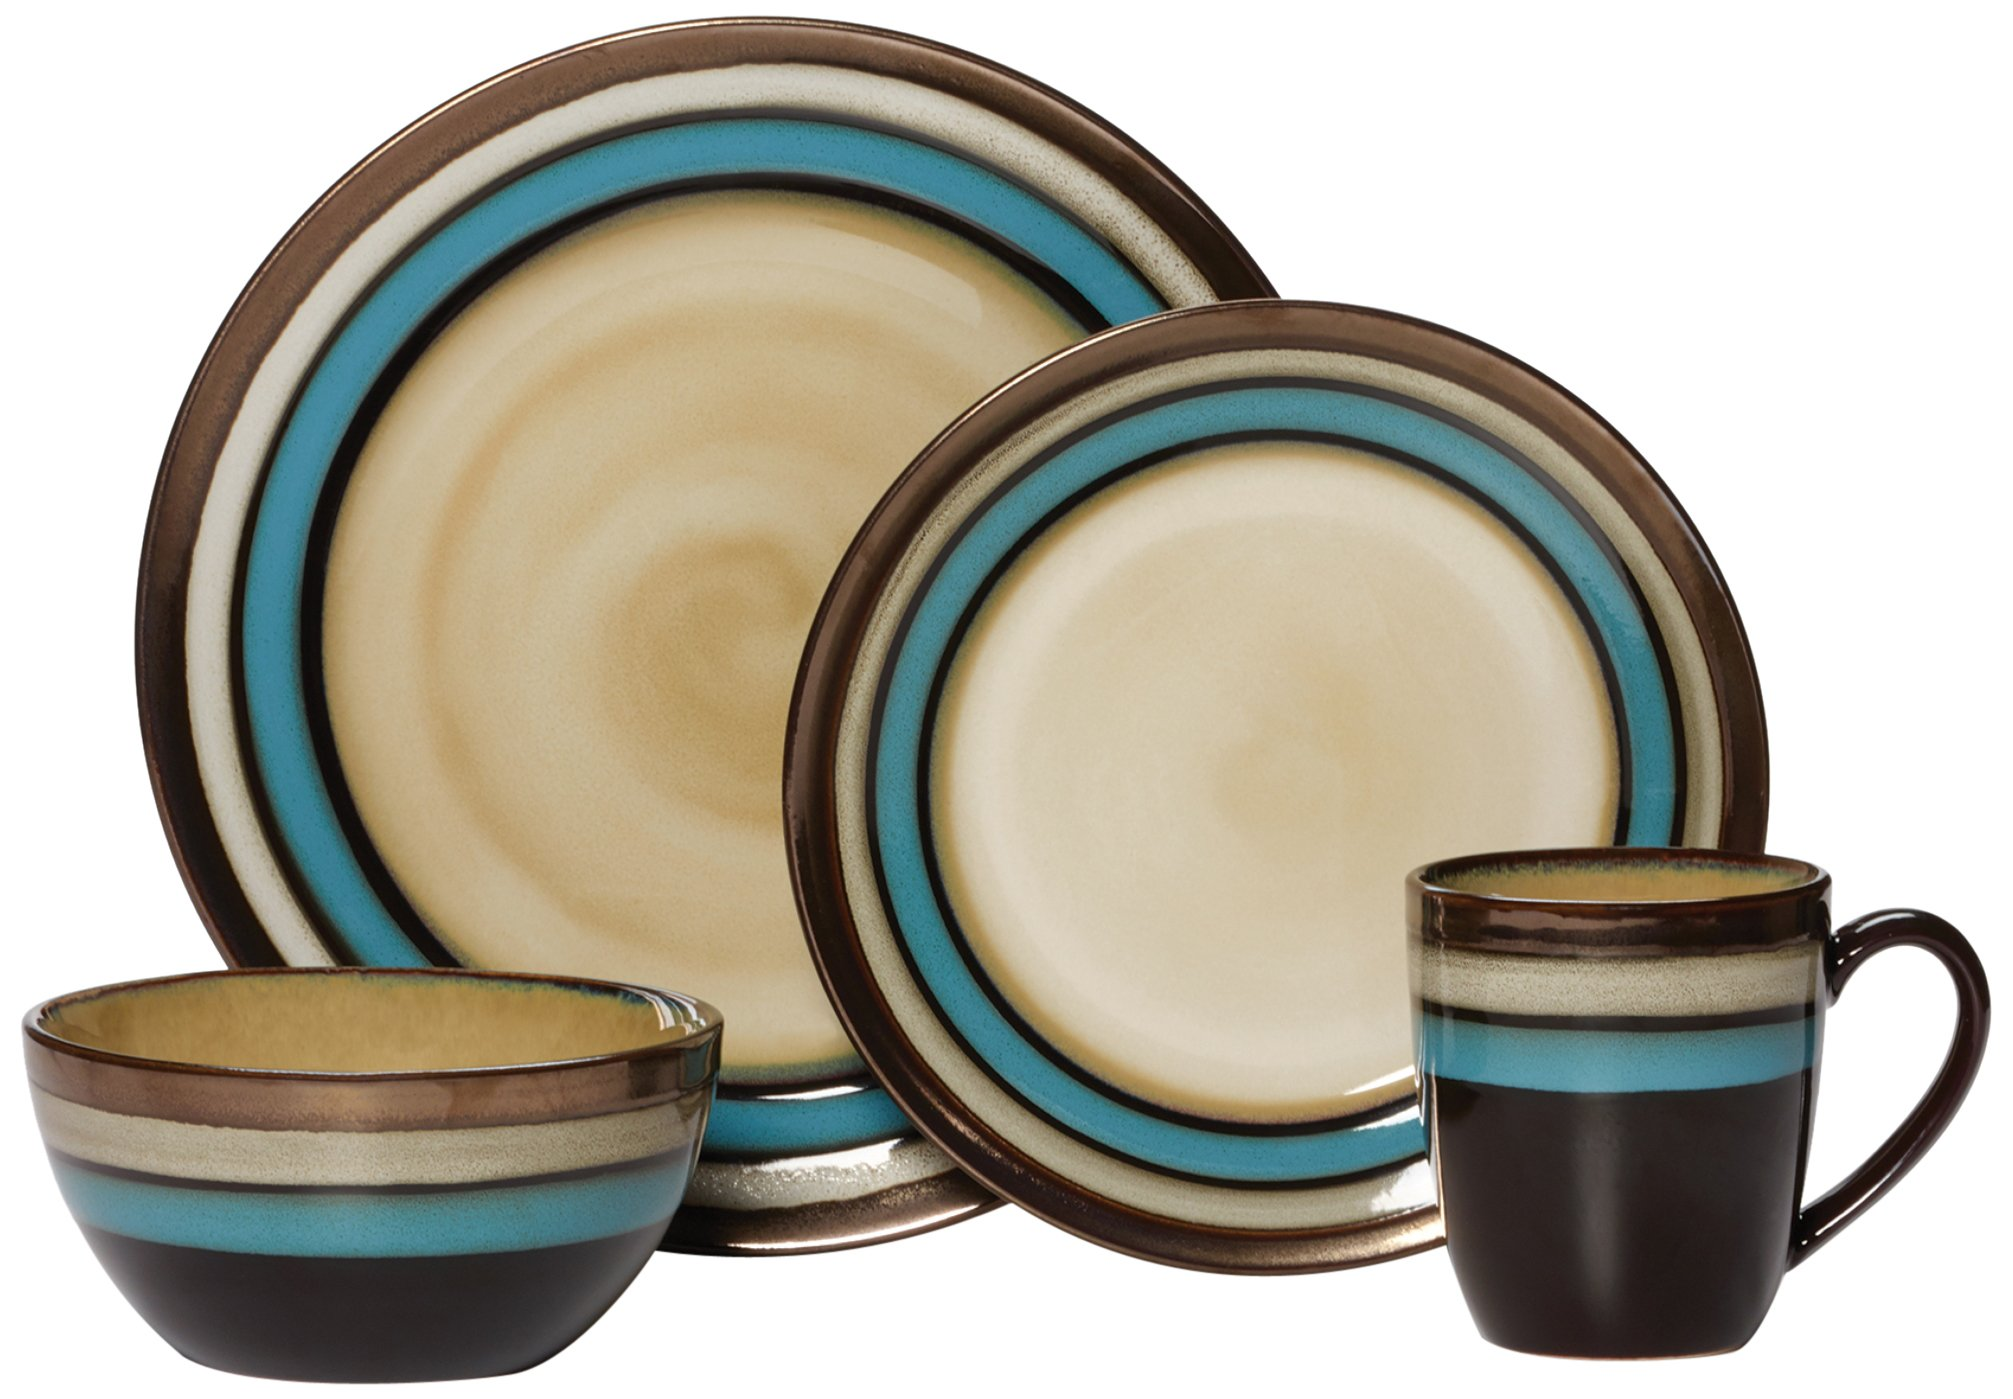 Gourmet Basic by Mikasa Spector Blue 16-Piece Dinnerware Set, Service for 4 by Gourmet Basics by Mikasa